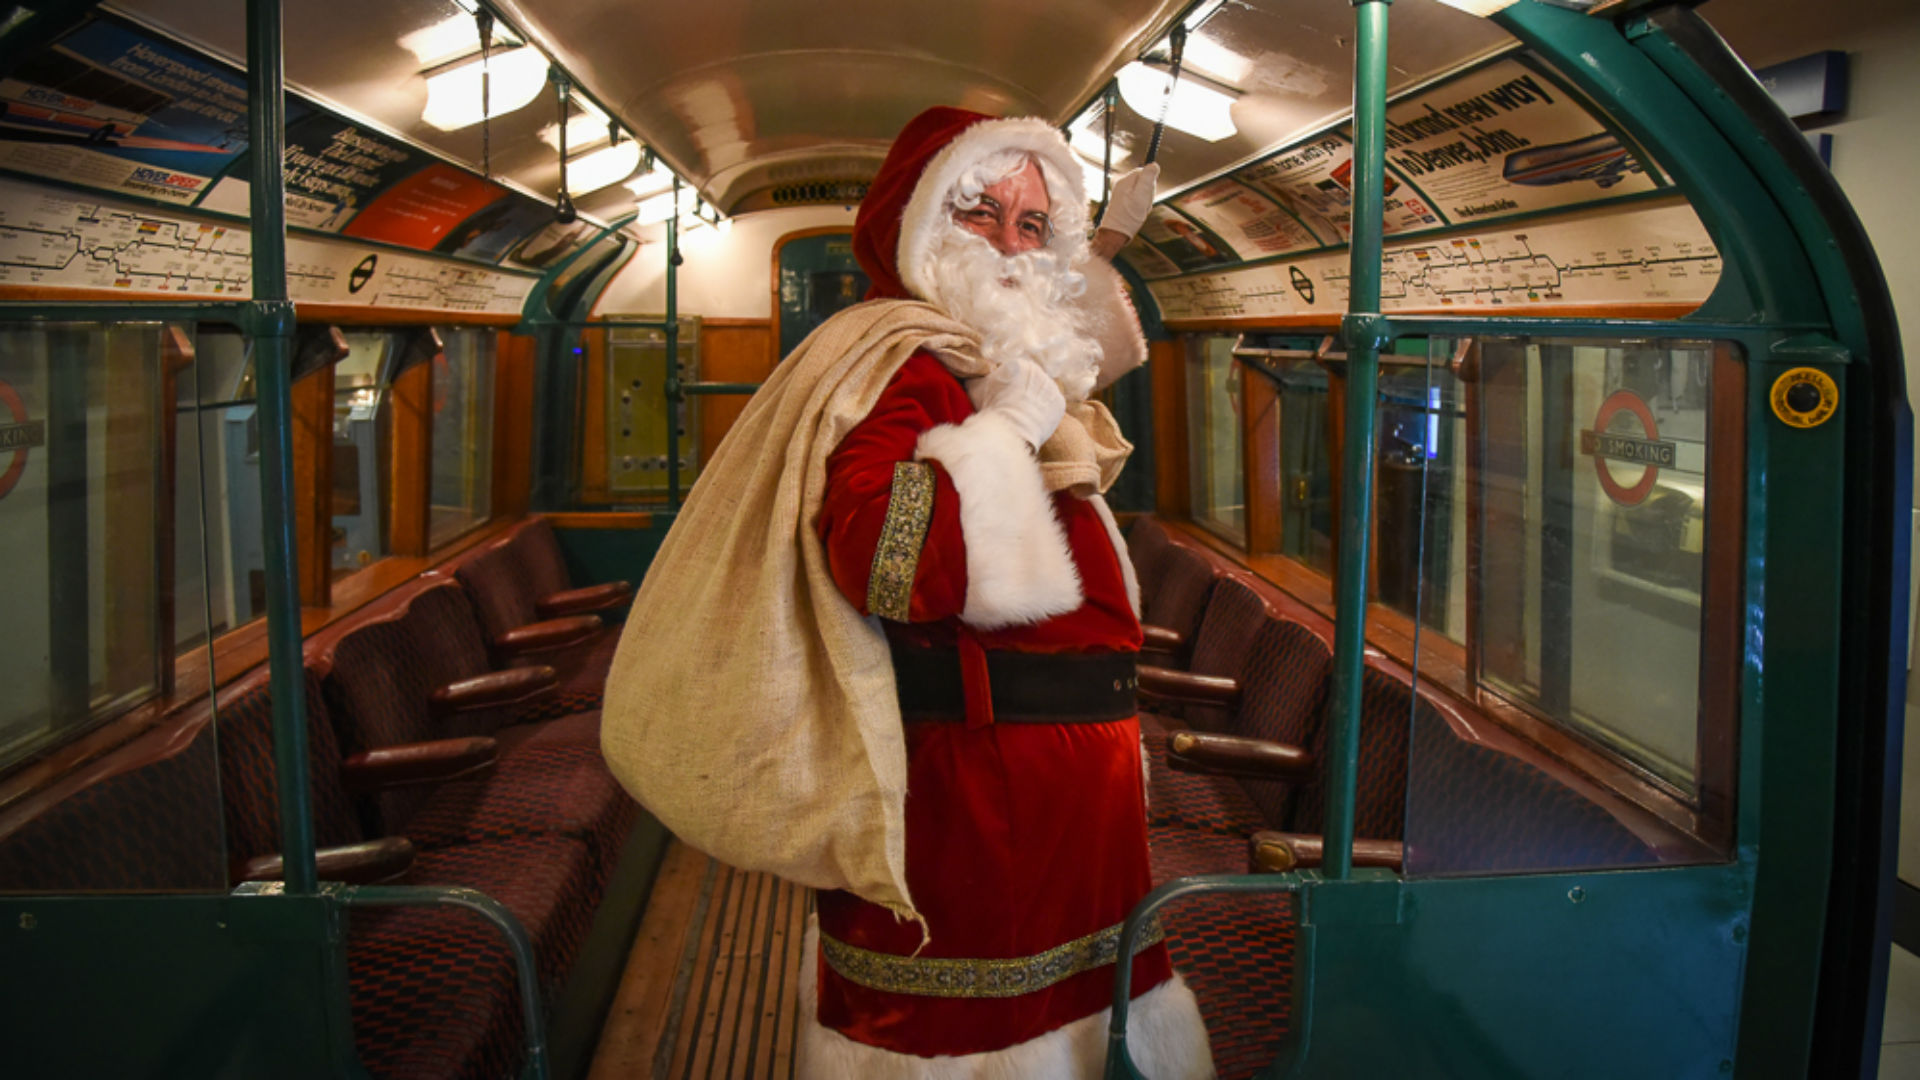 A man dressed in a Santa outfit holding a sack, in a London Tube.